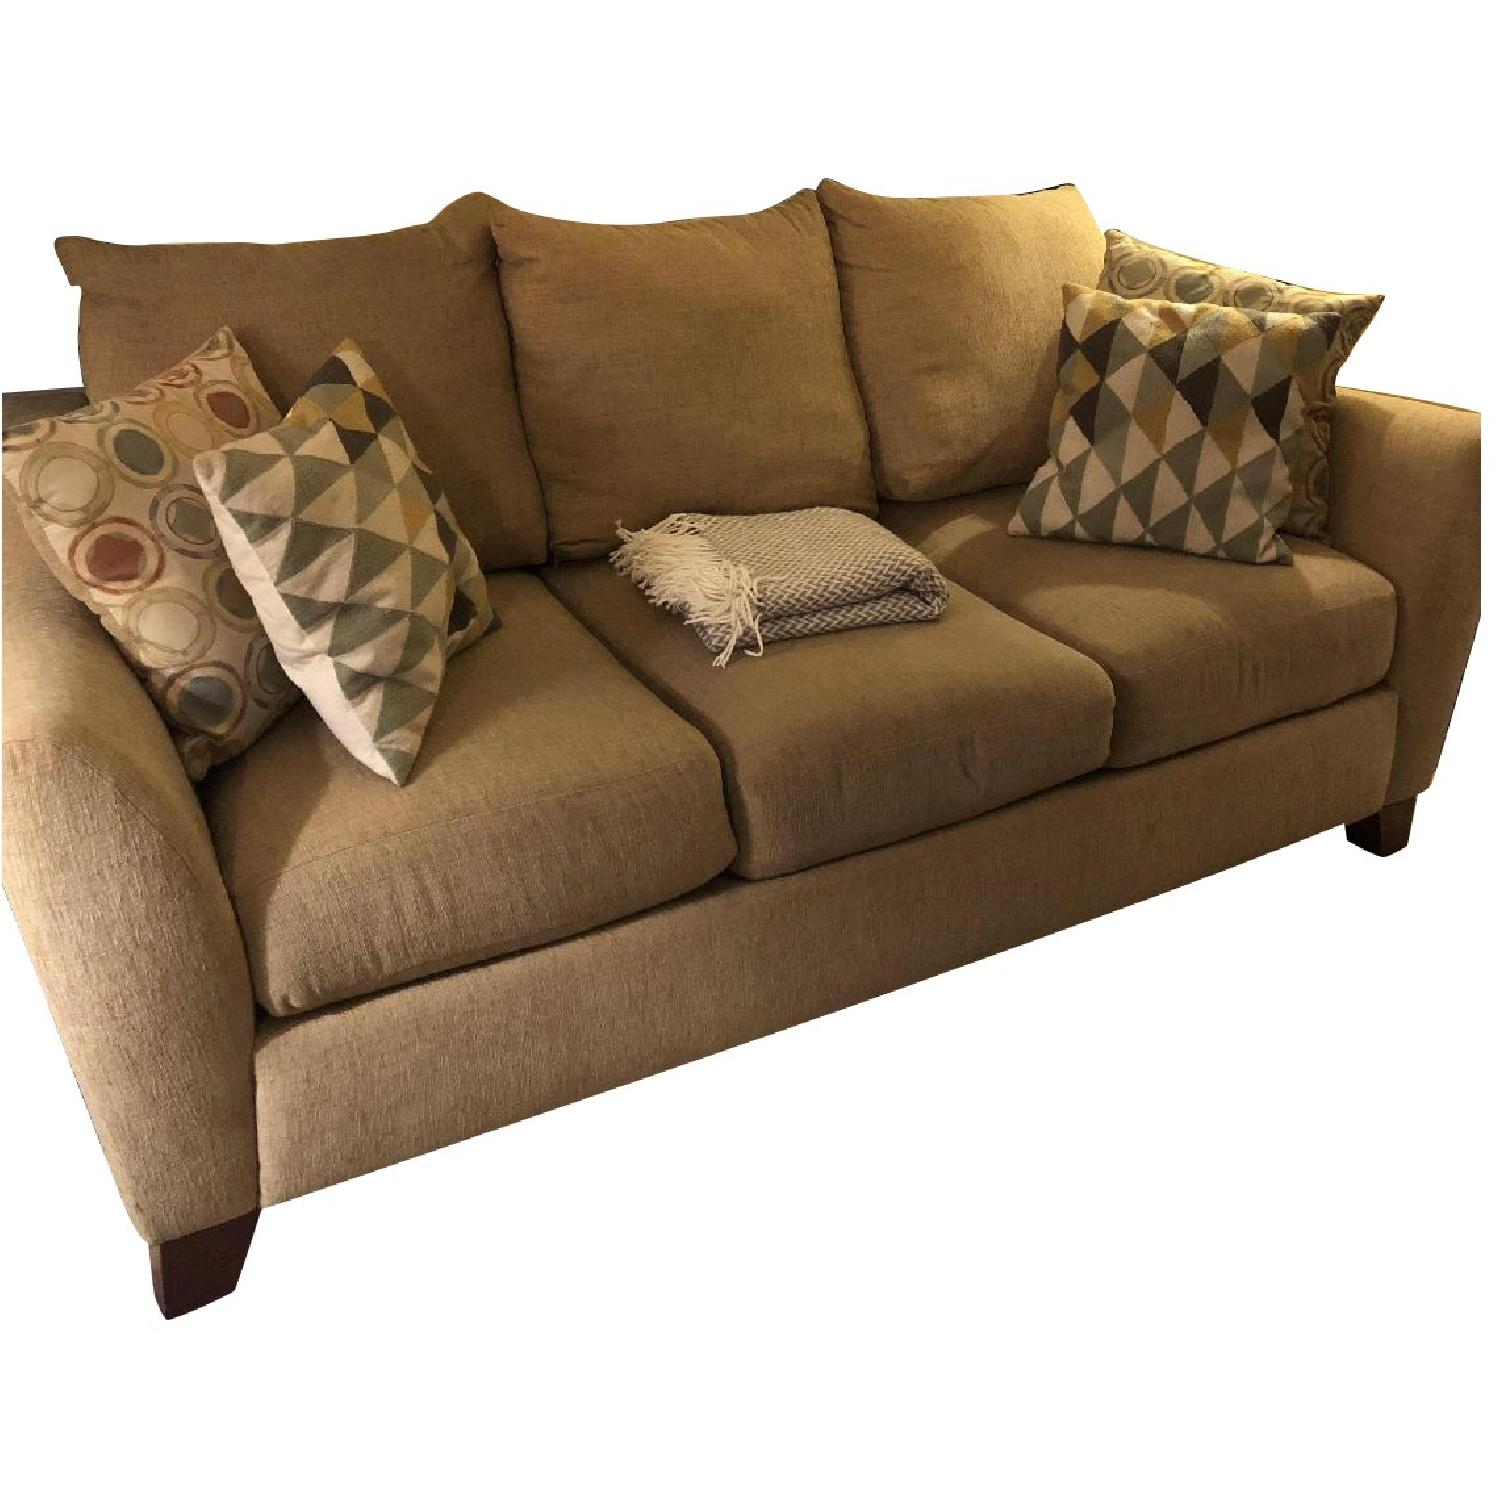 Raymour & Flanigan Kathy Ireland Home Tan Sofa